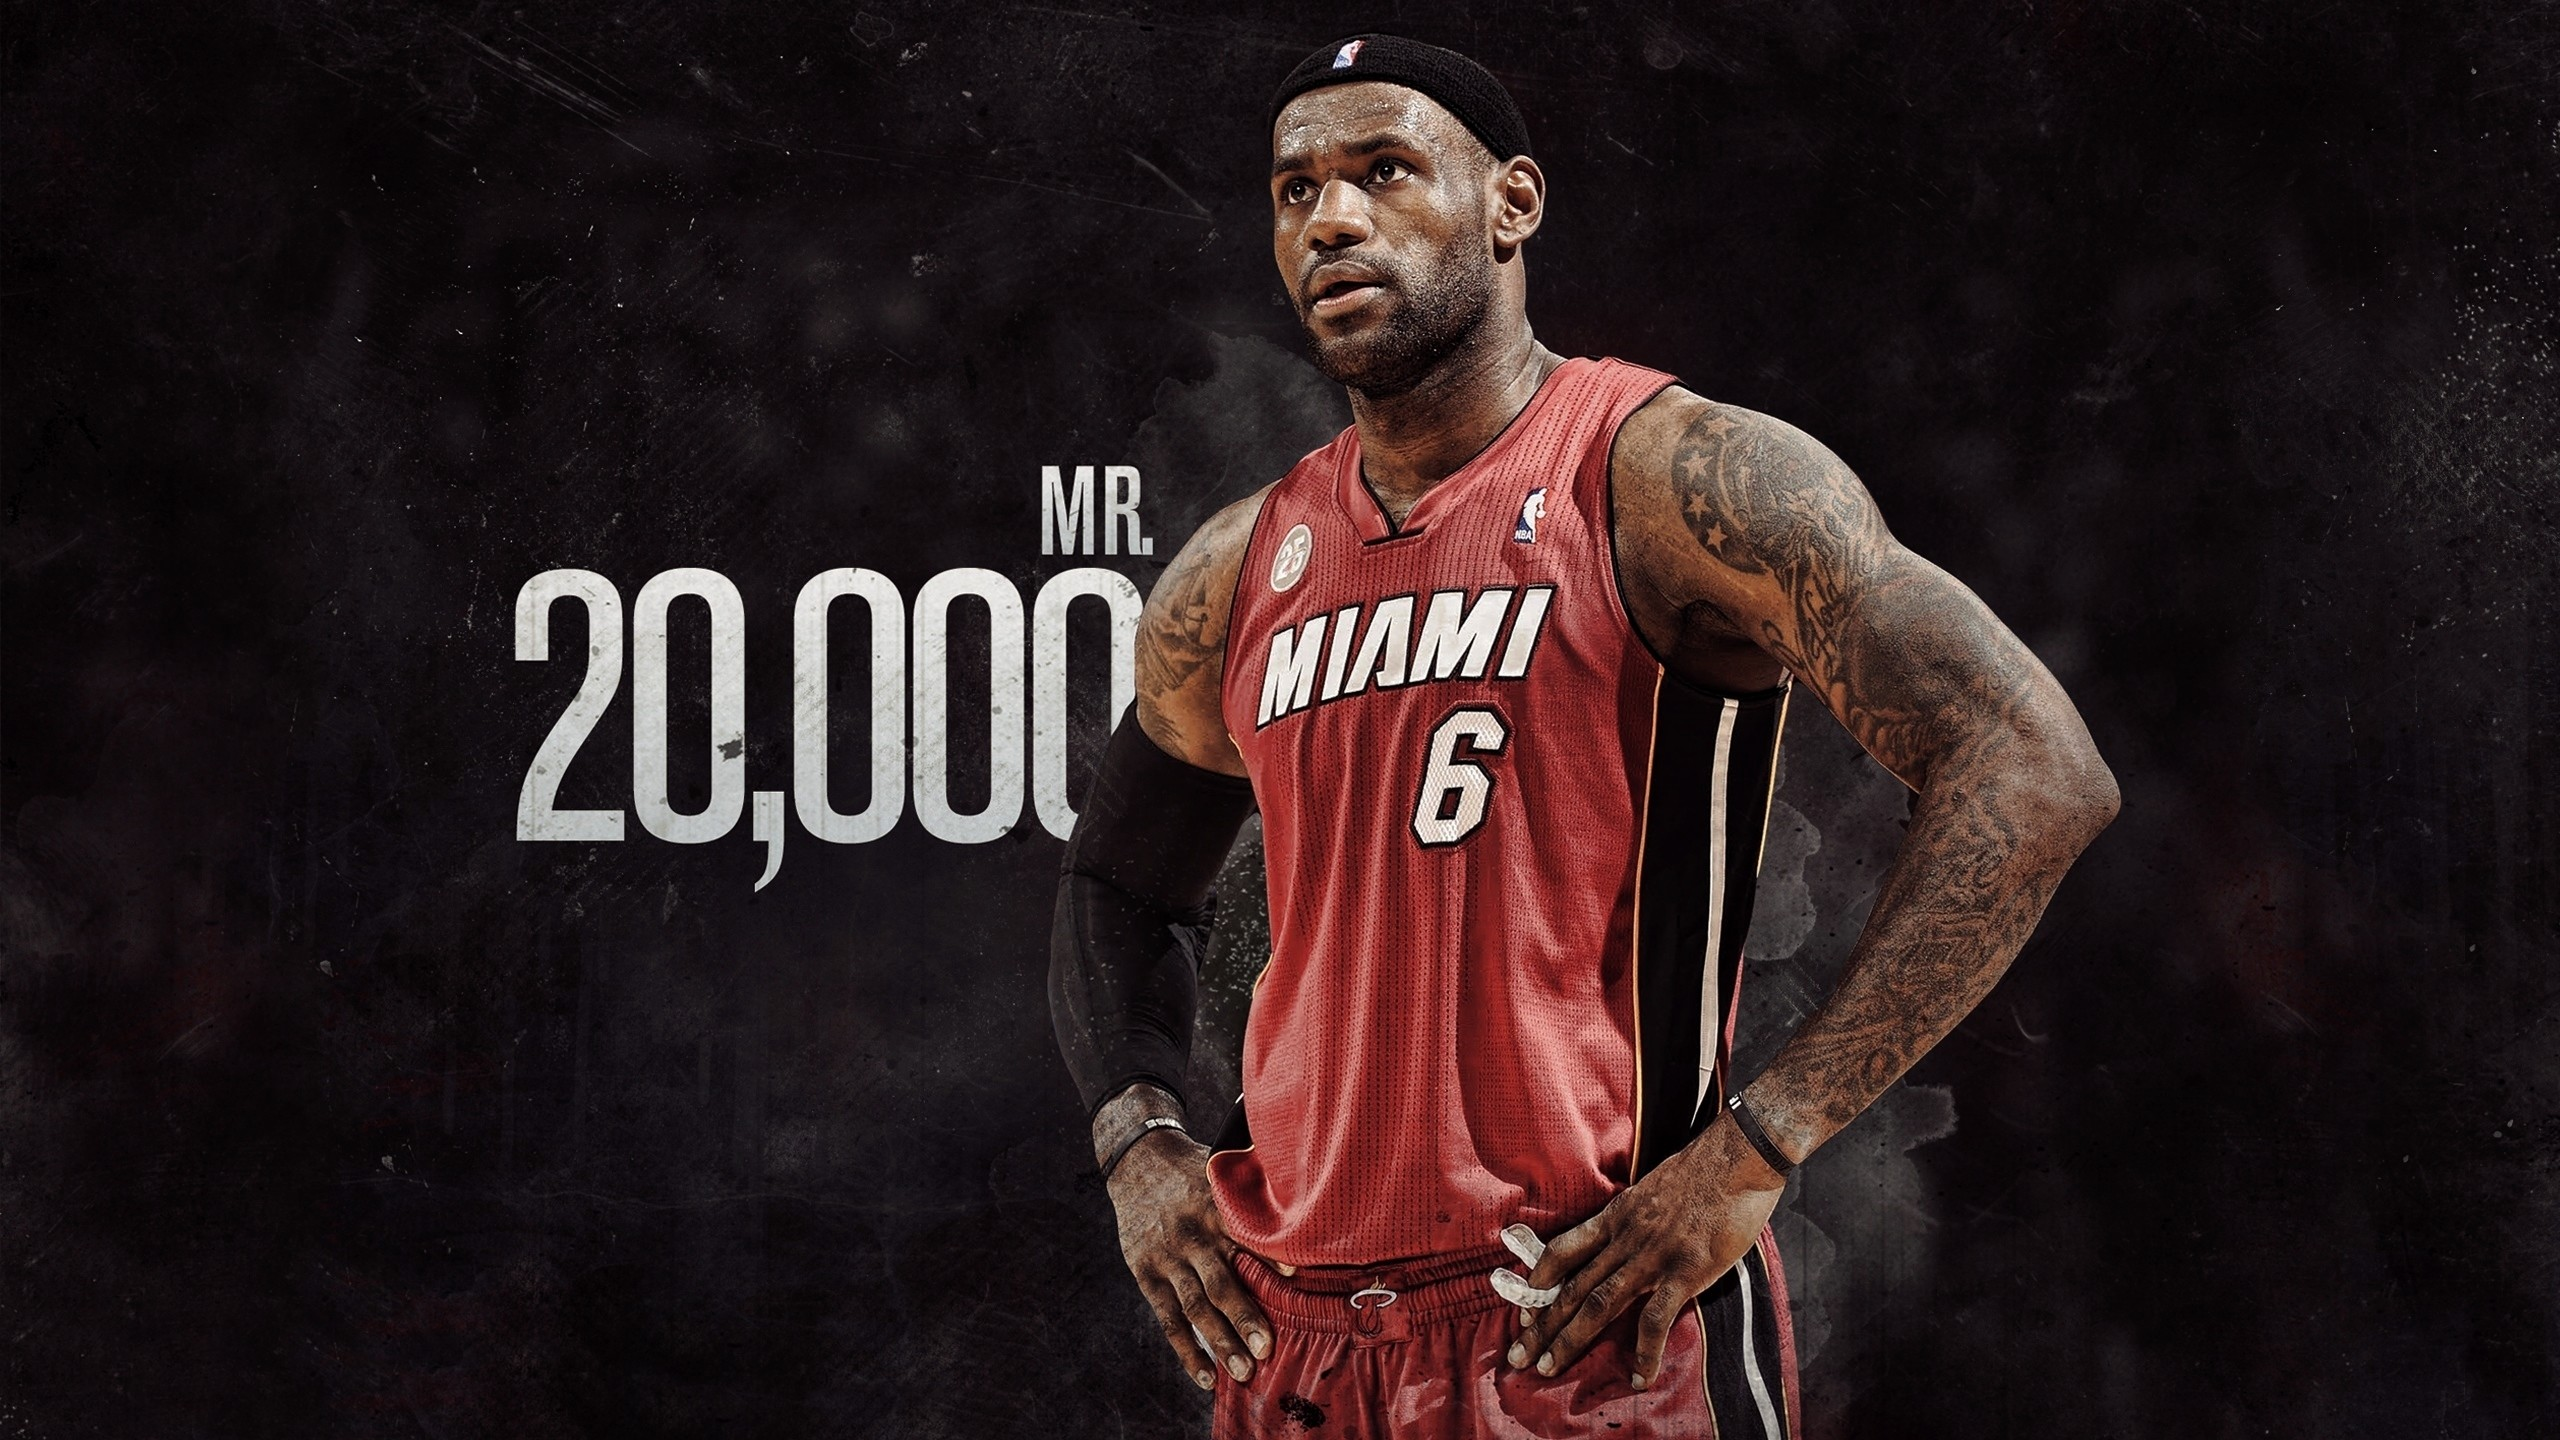 Lebron James Wallpapers Miami Heat (69+ Images